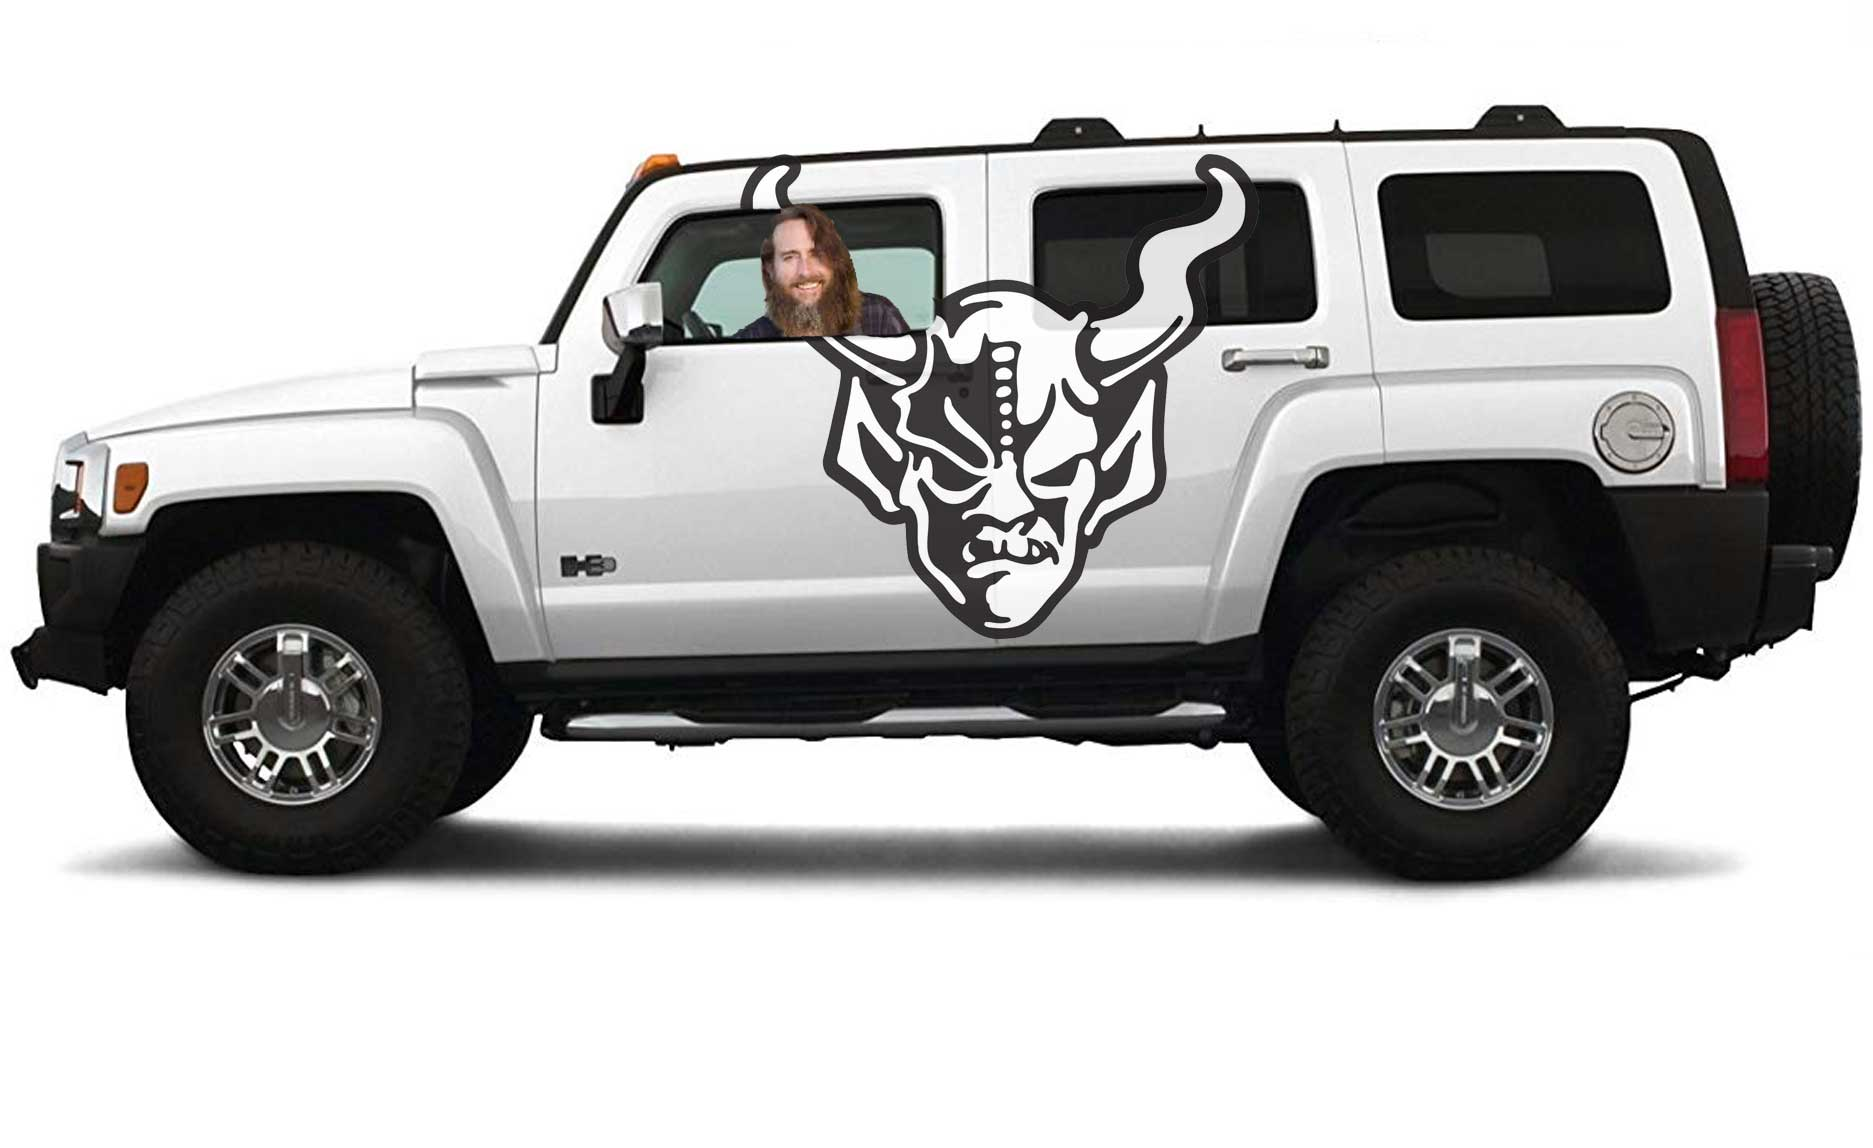 H3 Hummer Stone Brewing